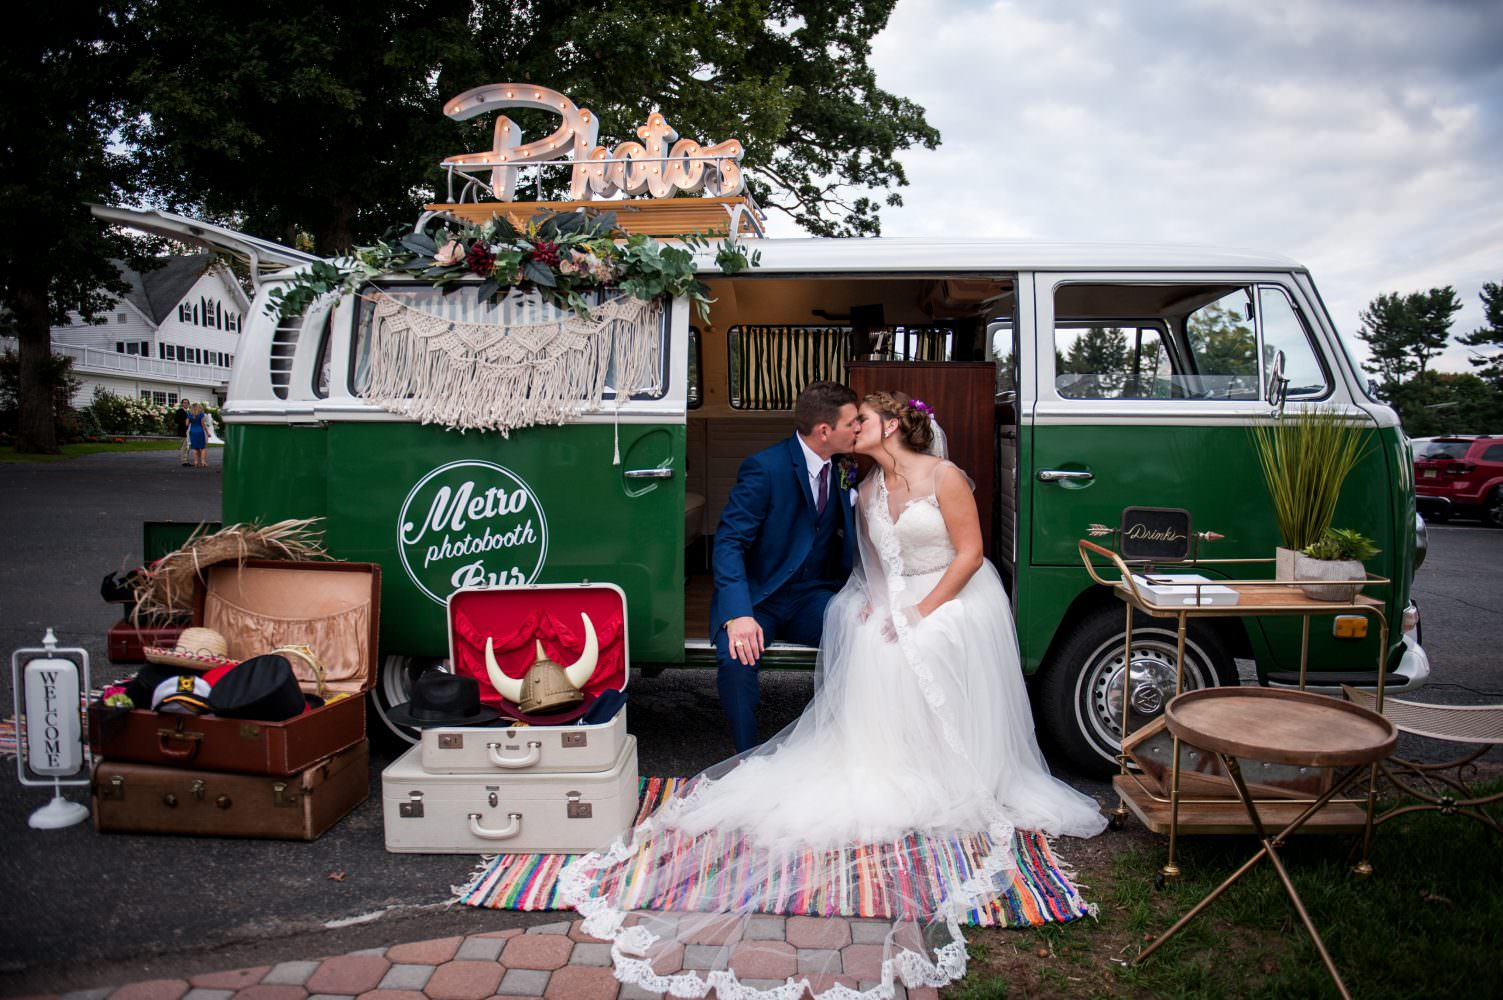 Bride and groom sitting by a vintage Volkswagen photo booth kissing